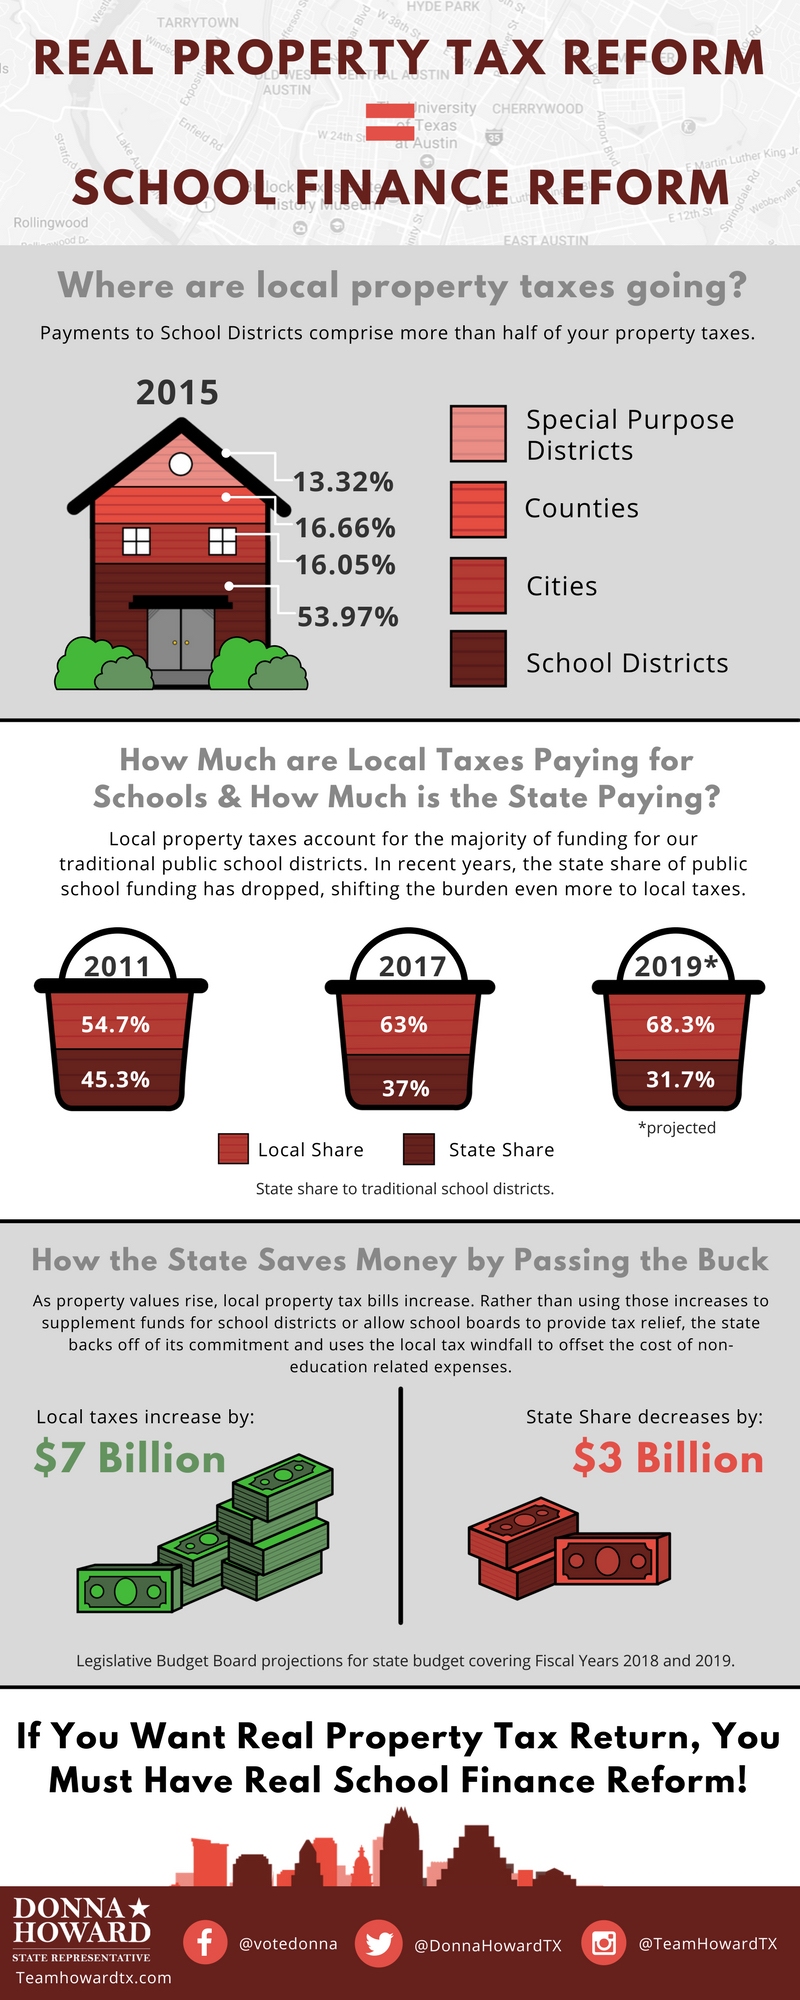 Real Property Tax Reform Equals School Finance Reform